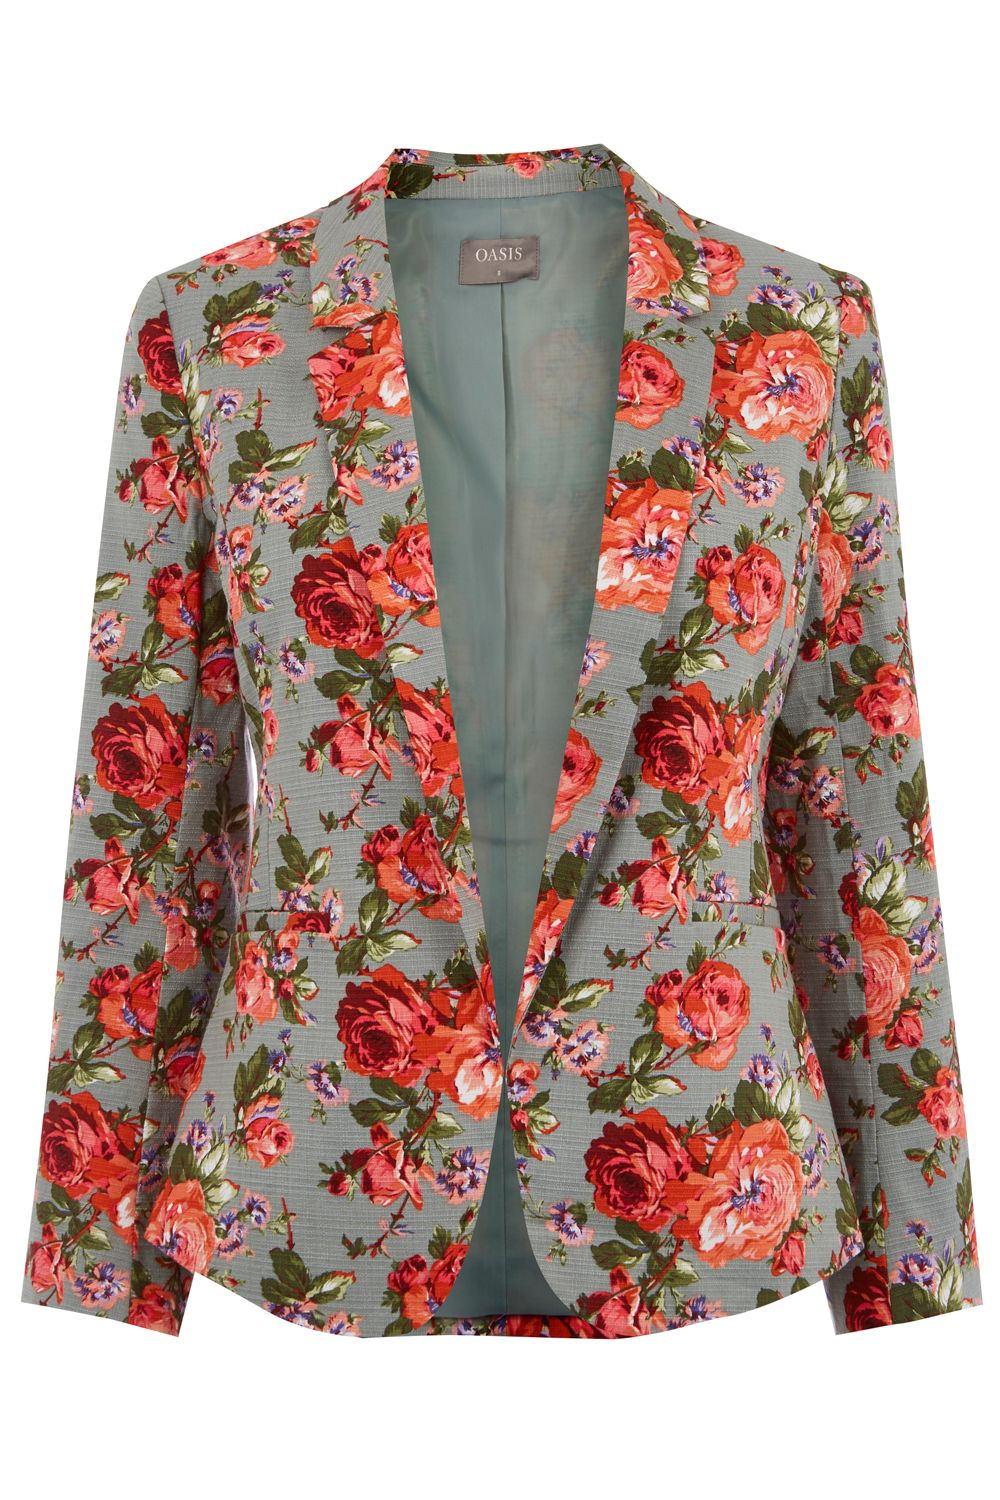 Oasis ROSE PRINT SUIT JACKET, Multi-Coloured